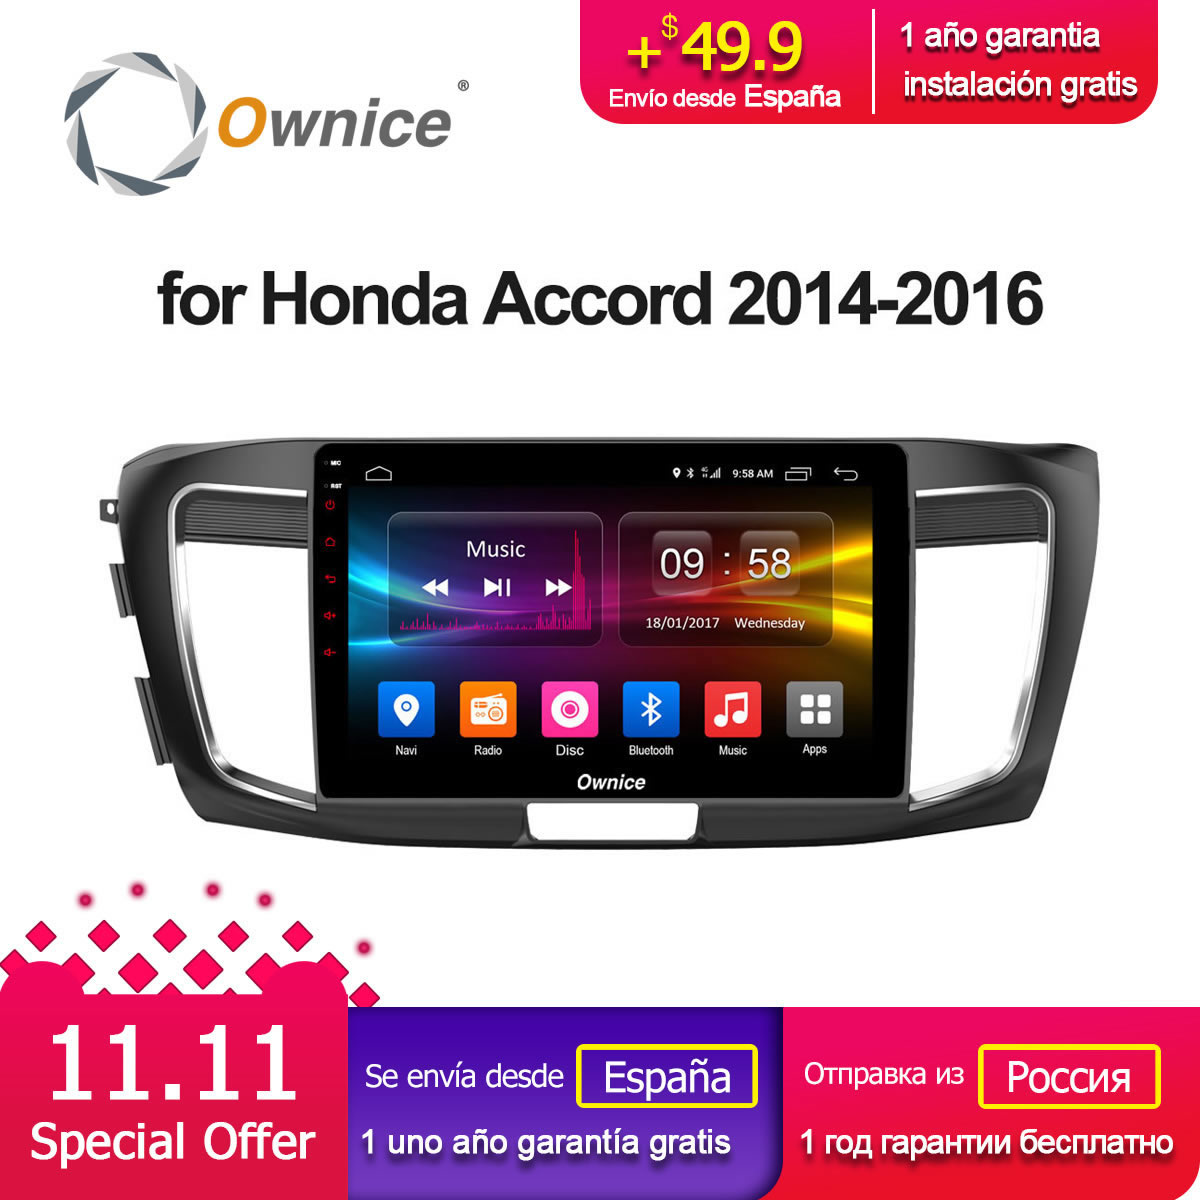 Ownice C500+ G10 10.1 Android 8.1 For honda ACCORD 2014 2015 2016 Car Radio GPS player 2GB RAM 32GB ROM Support DVD 4G SIM Card ownice c500 4g sim lte octa 8 core android 6 0 for kia ceed 2013 2015 car dvd player gps navi radio wifi 4g bt 2gb ram 32g rom